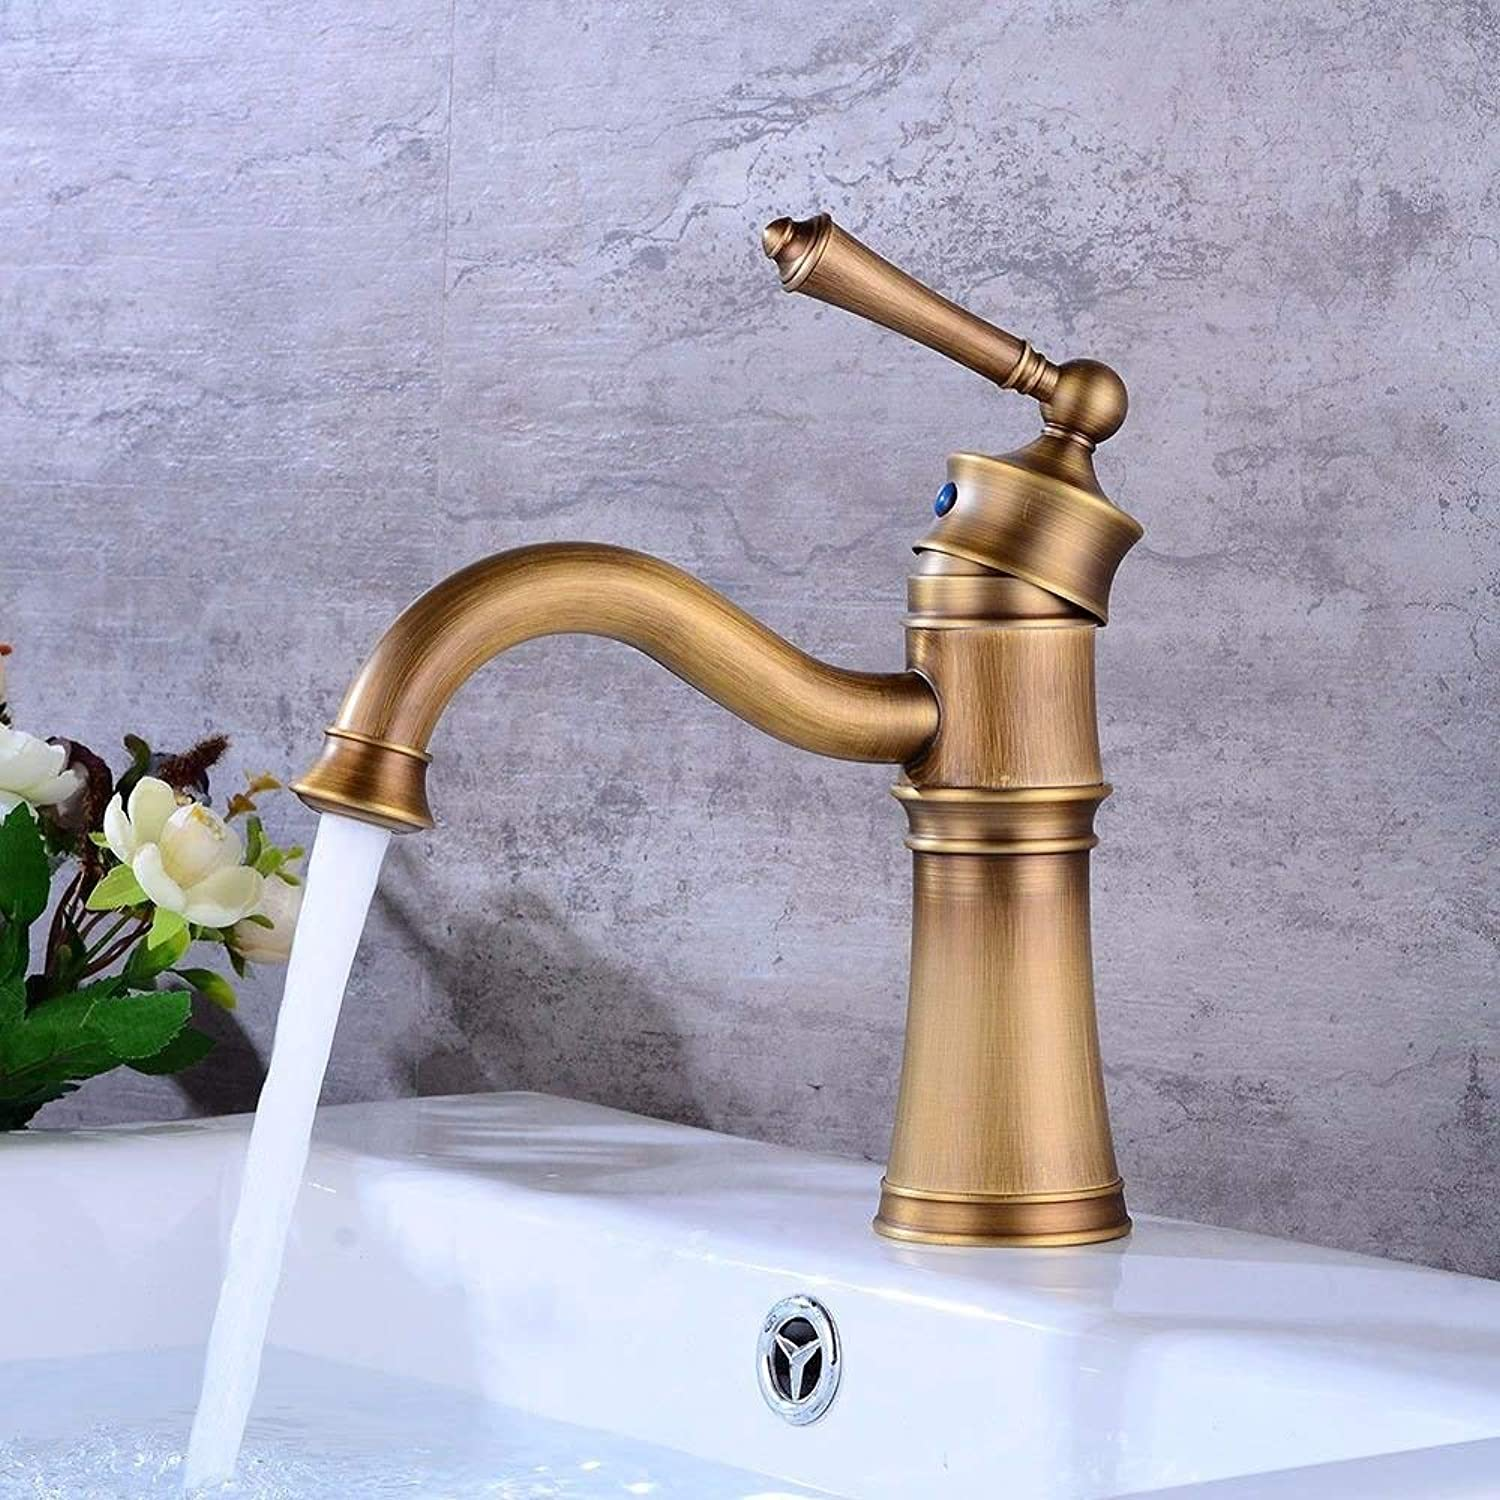 DOJOF Bathroom Sink Faucet Basin Mixer Tap Swivel Hot and Cold Water Ceramic Single Hole Single Lever Basin Sink Tap Bathroom Bar Faucet